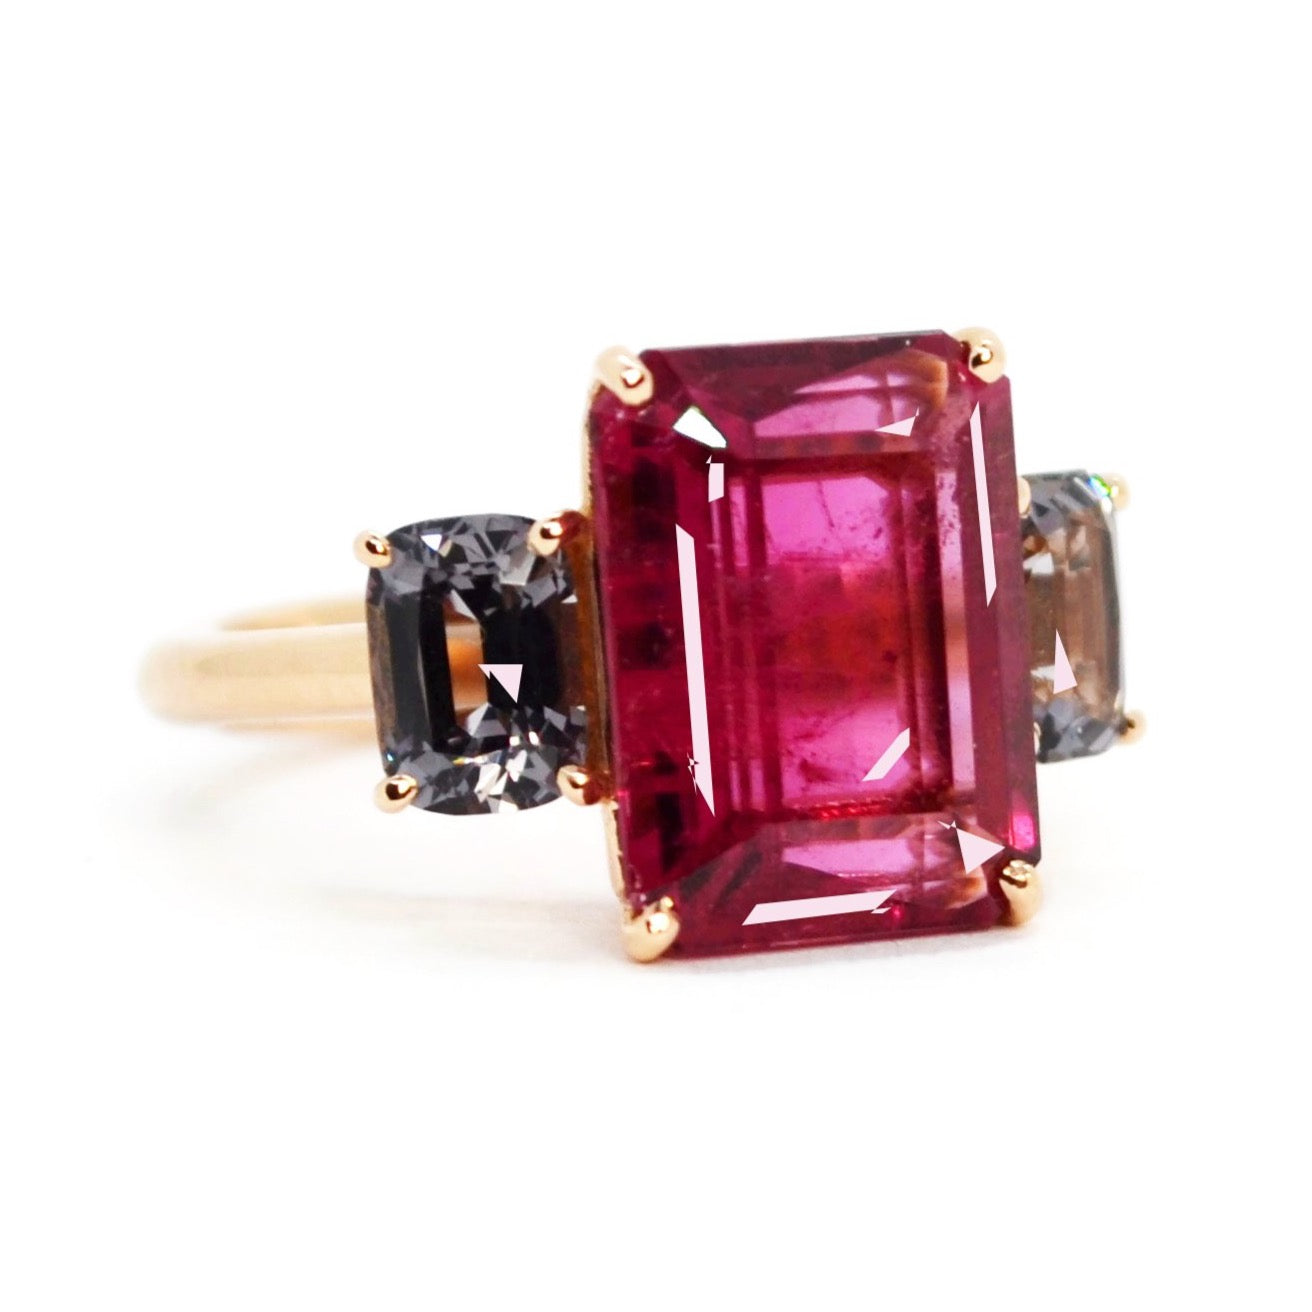 A-FURST-PARTY-RING-RUBELLITE-SPINEL-18K-ROSE-GOLD-A1510RTRSP